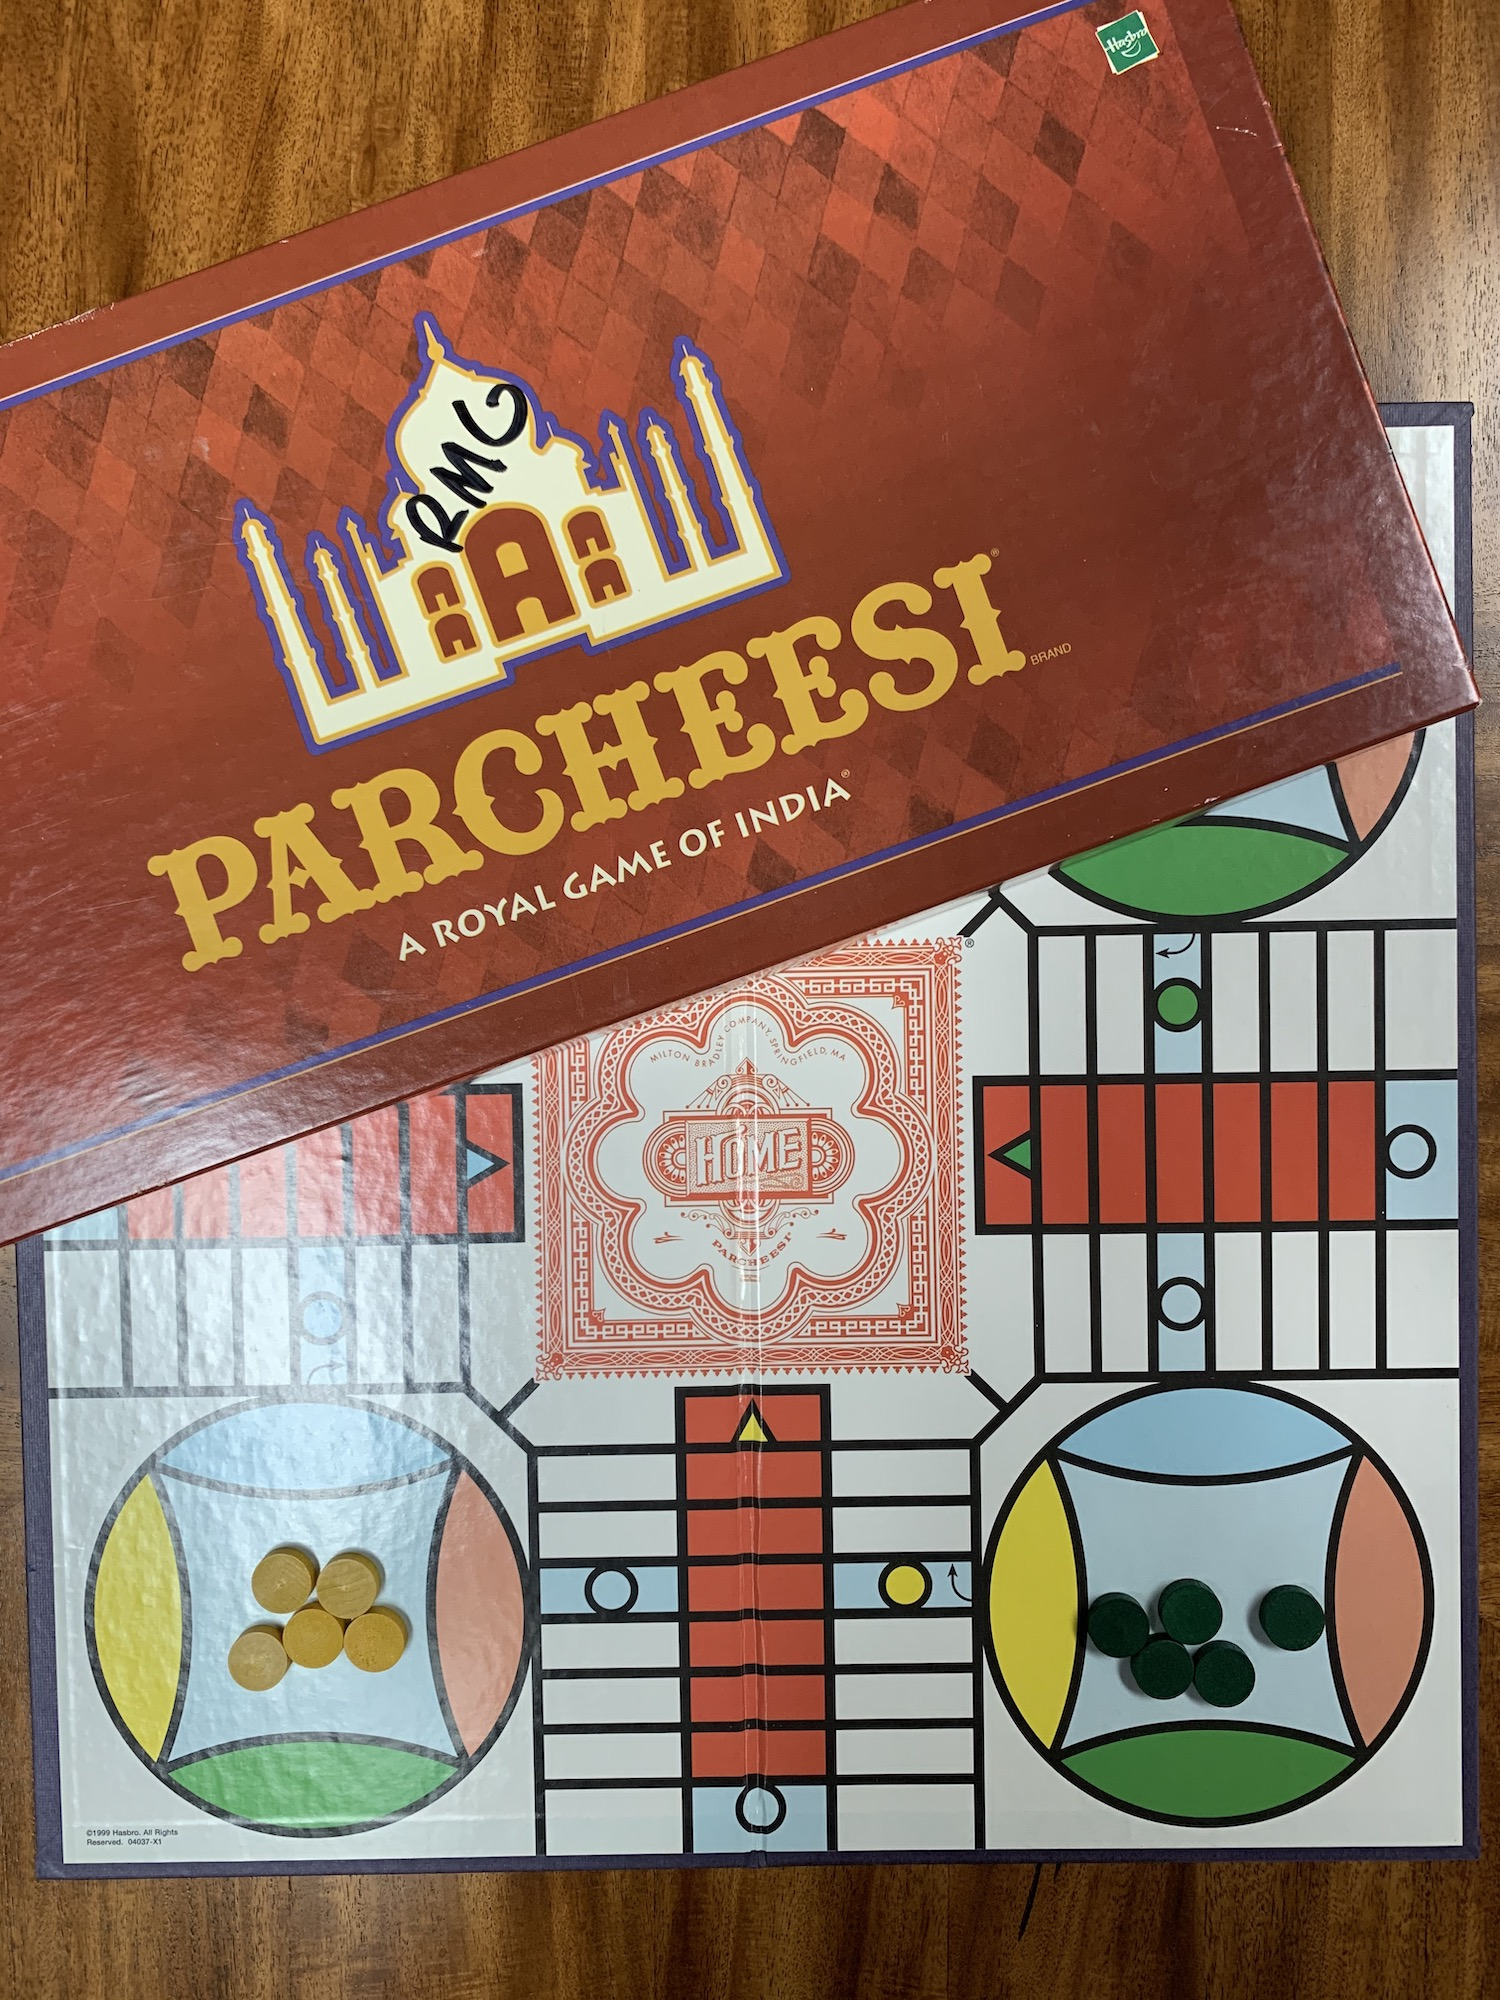 Exciting Board game of Parcheesi